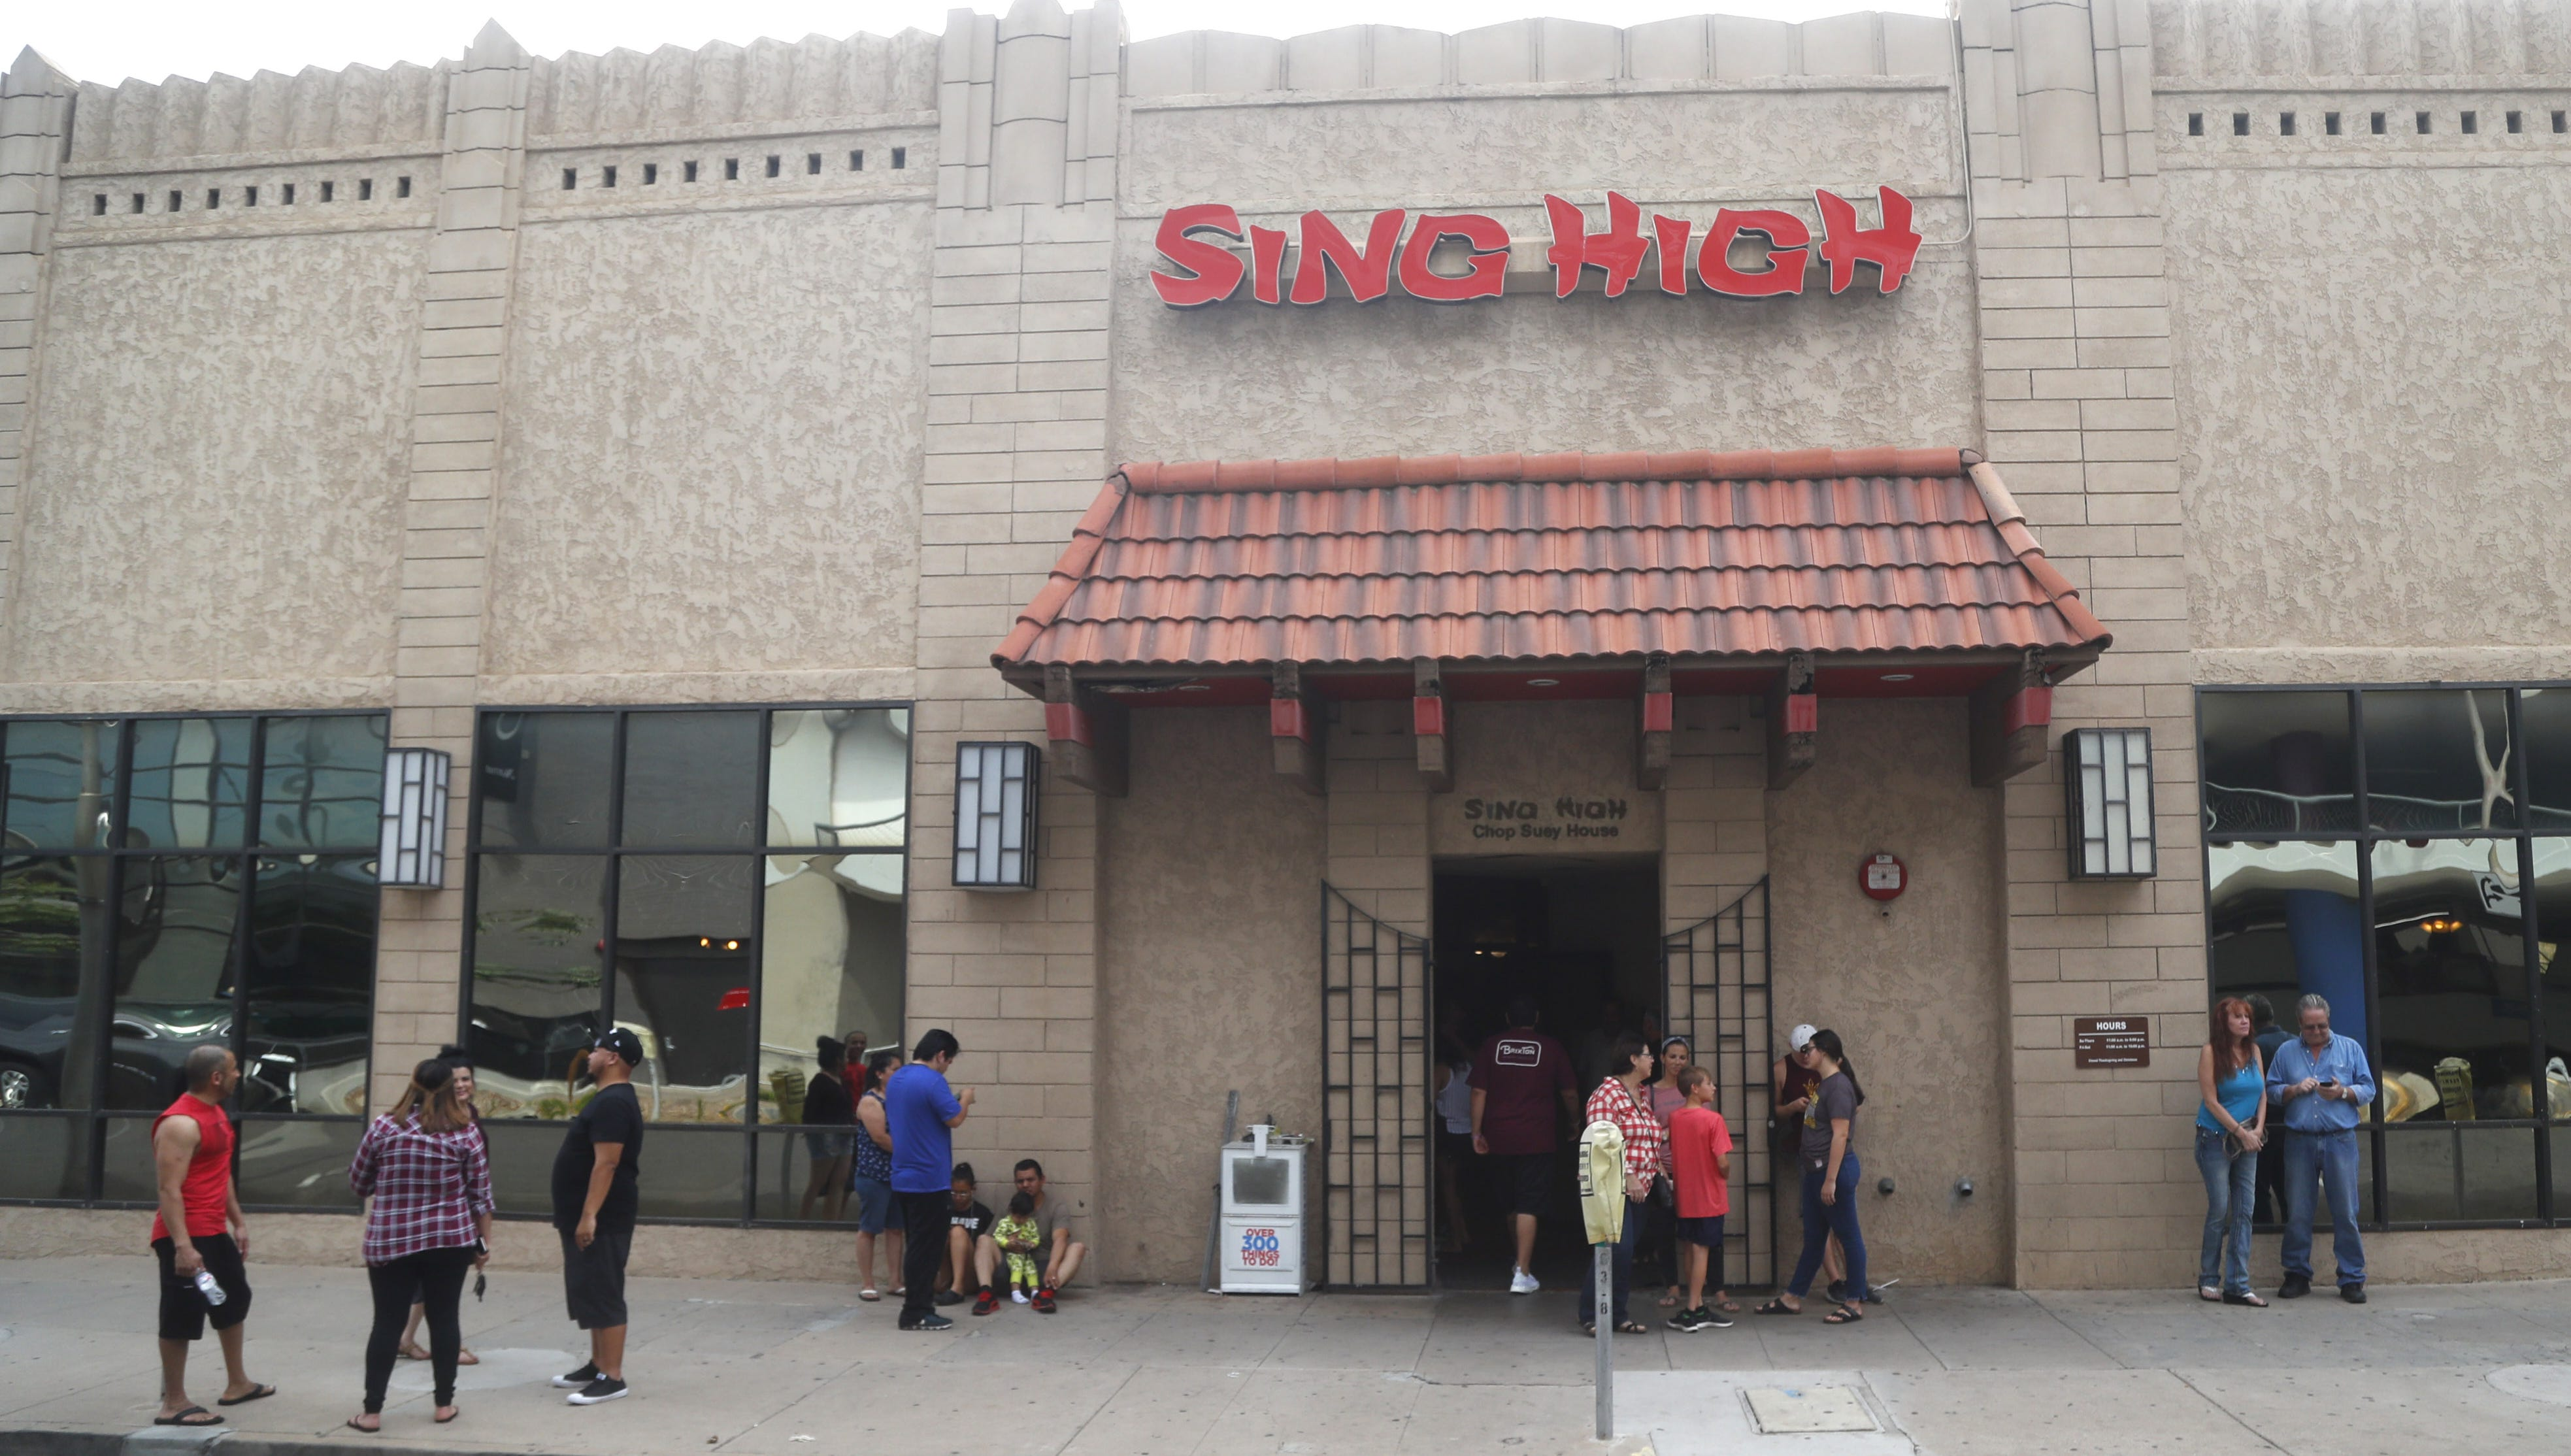 As a Chinese immigrant child, I know why Sing High Chop Suey House had to close